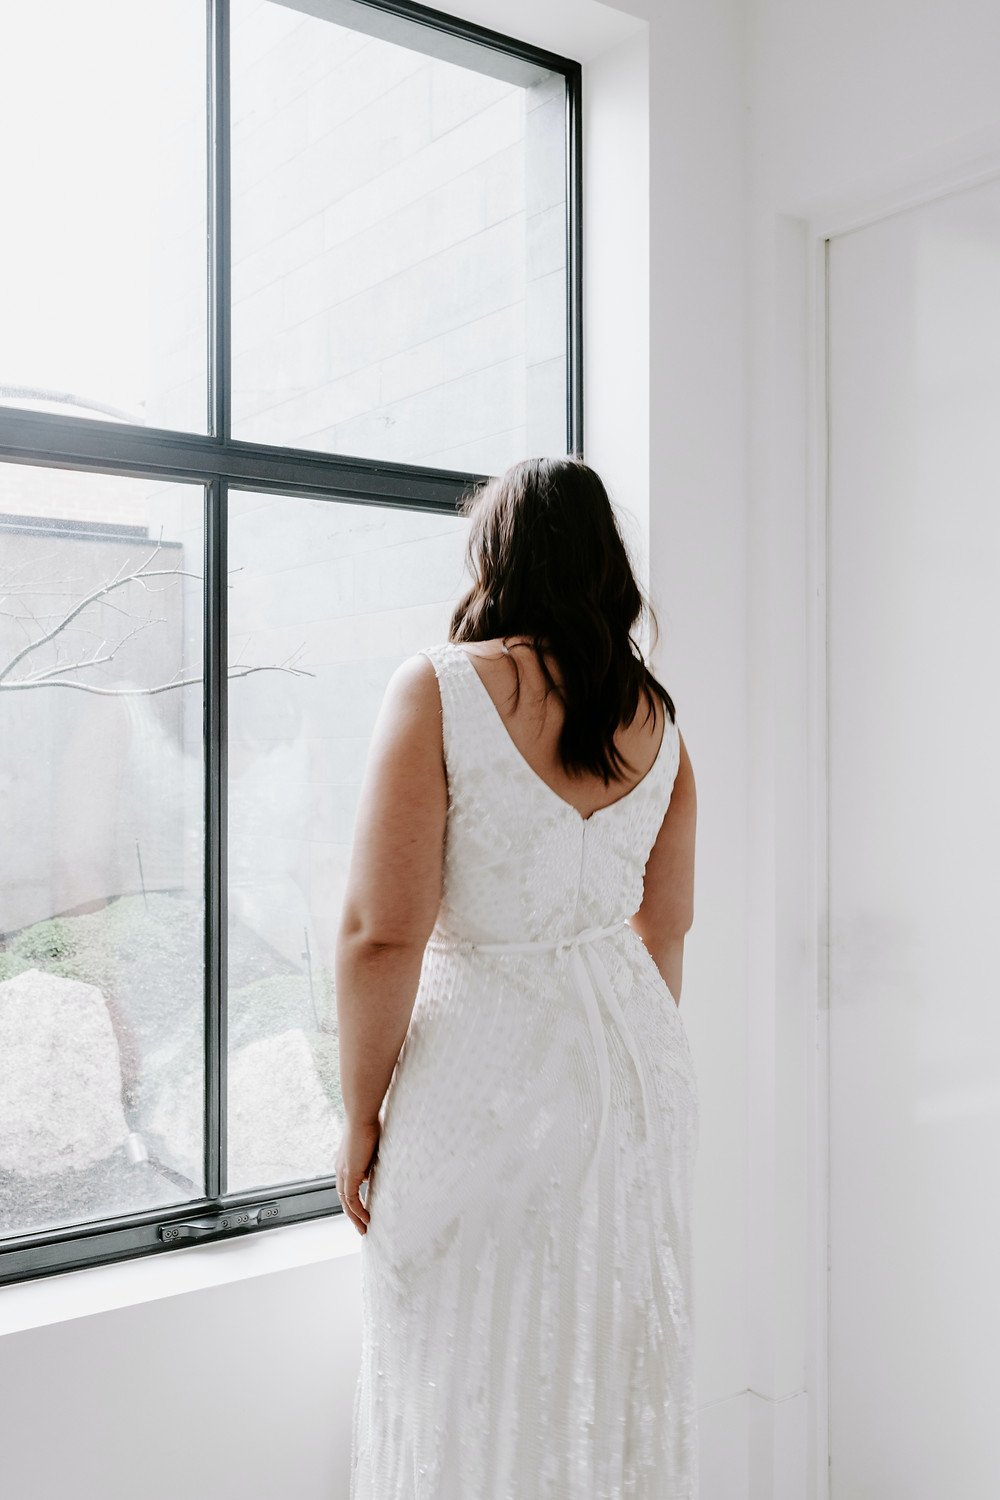 curvy bride in wedding dress looking out the window